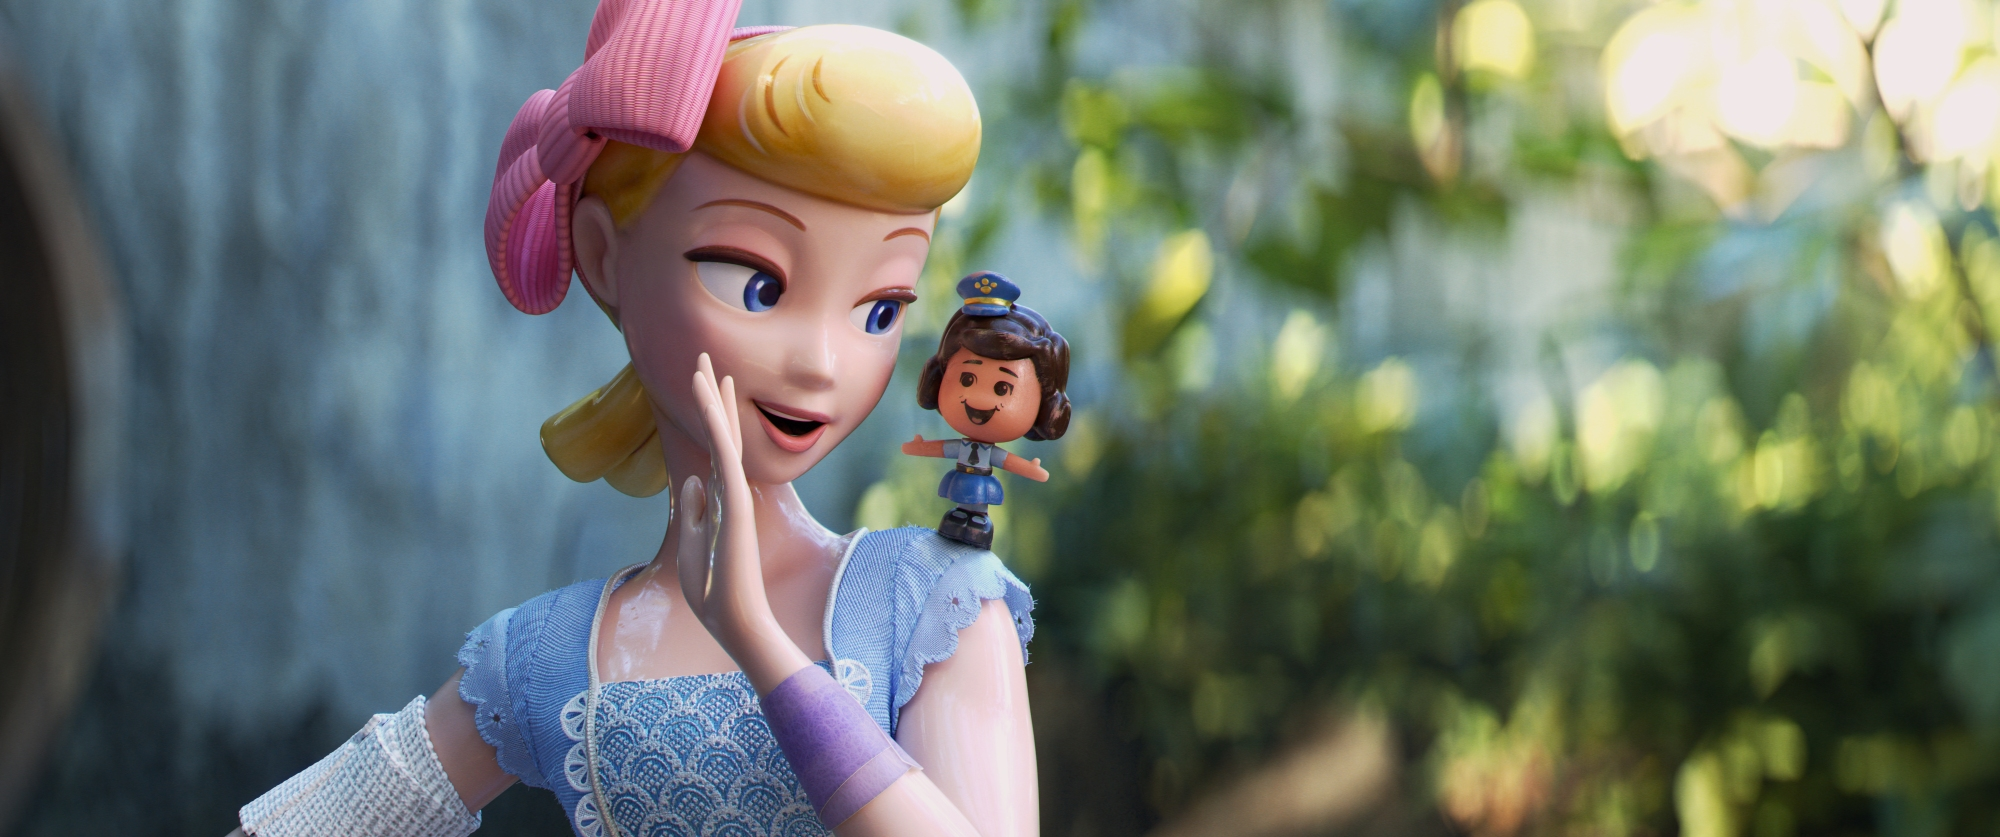 toy story 4 online use p364 241 pub.pub16.406 Ally Maki as Giggle McDimples in the long awaited film Toy Story 4